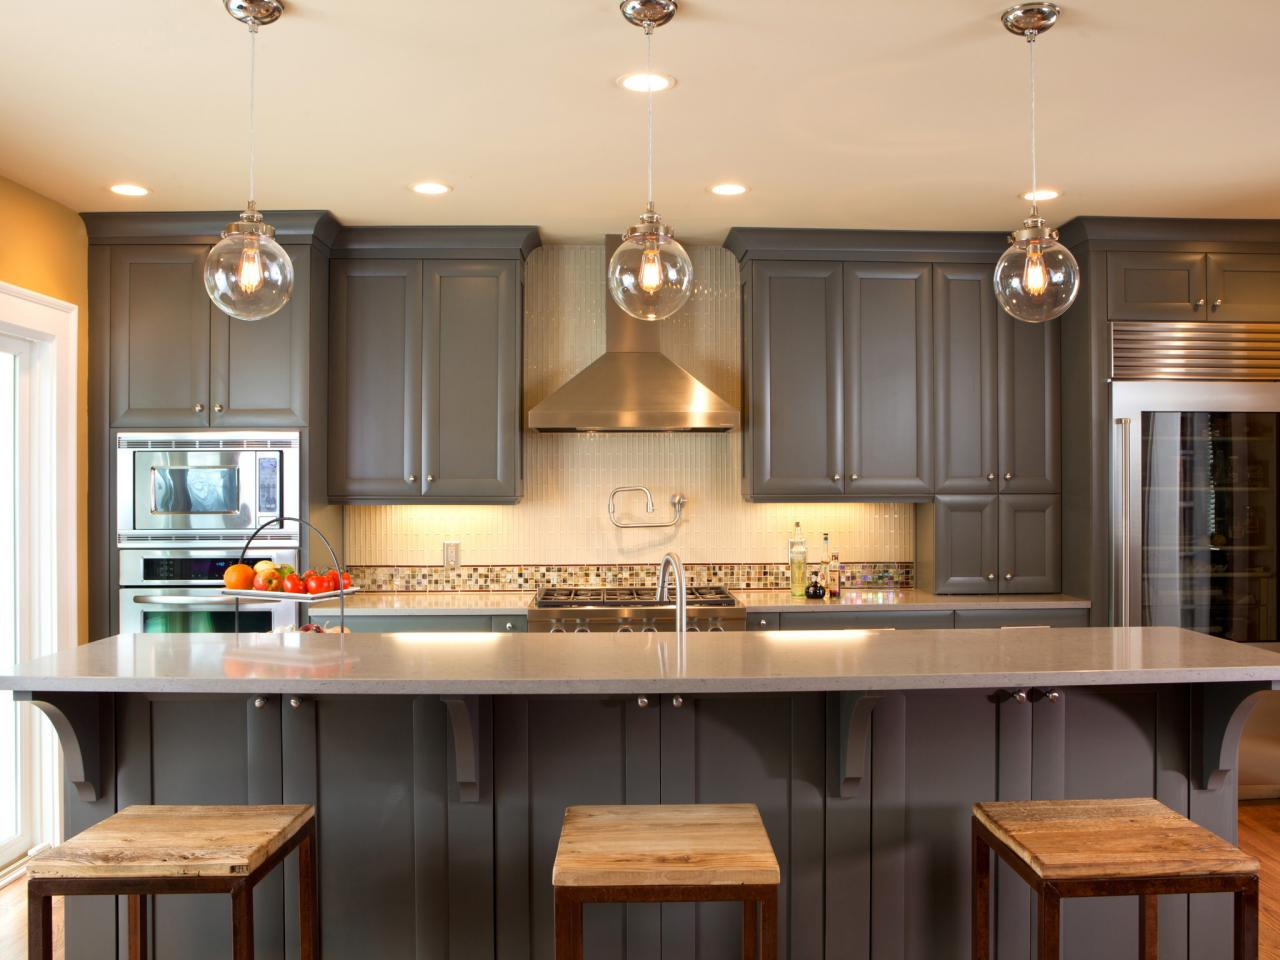 Charming Kitchen Paint Design Ideas Part - 2: Ideas For Painting Kitchen Cabinets